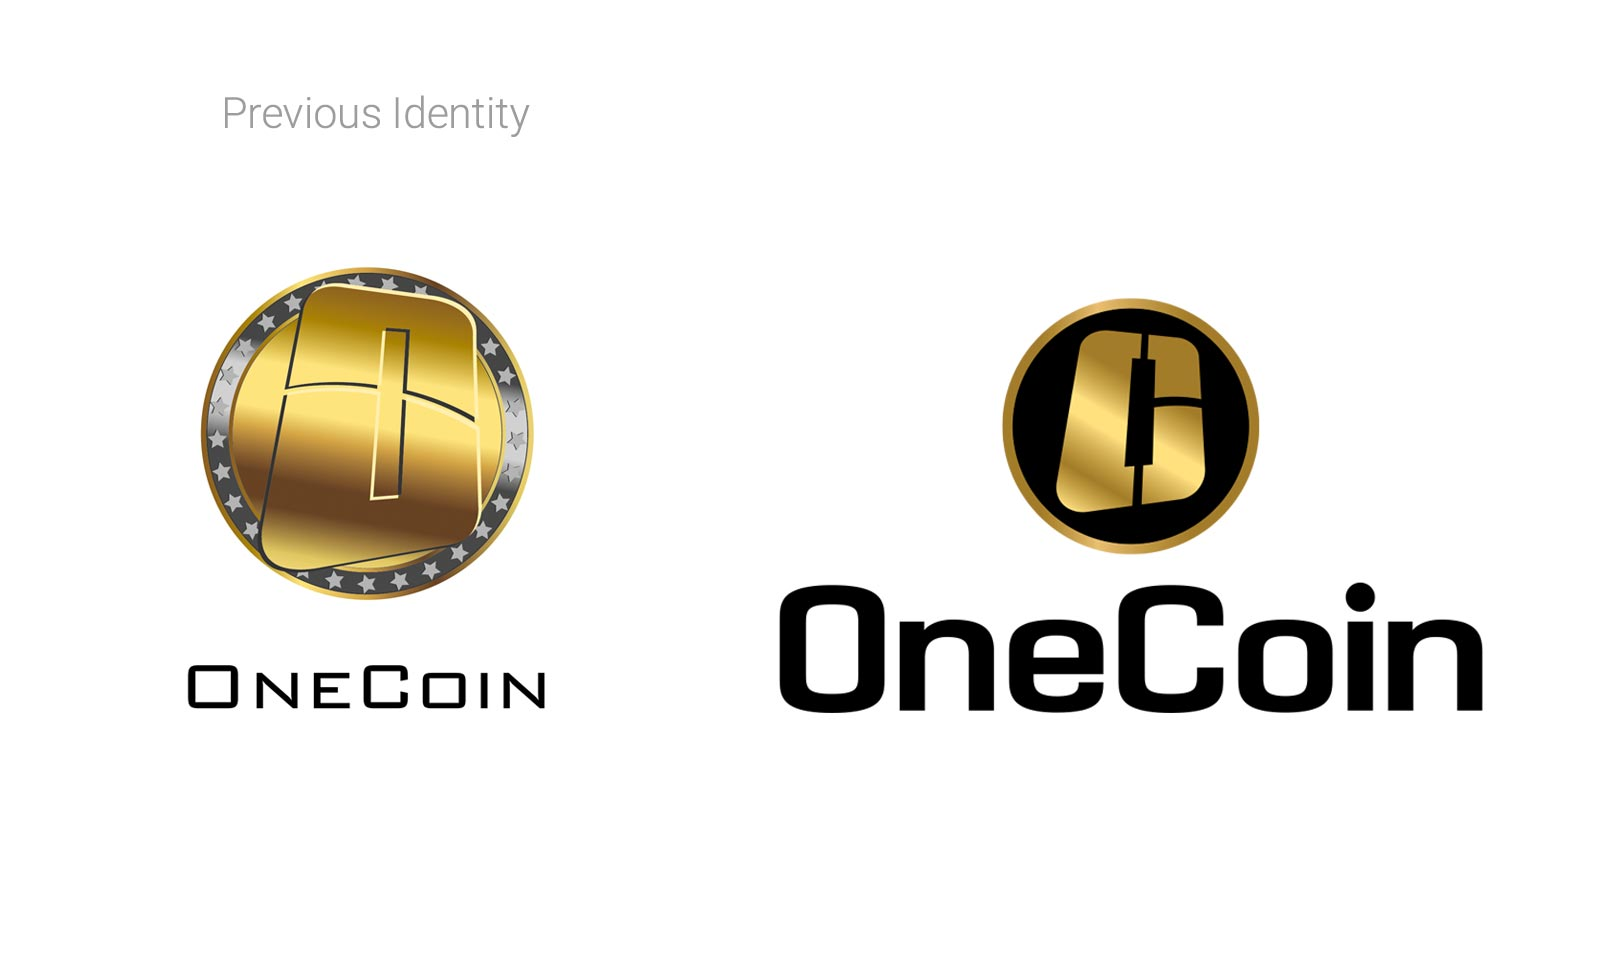 onecoin brandmark redesign cryptocurrency